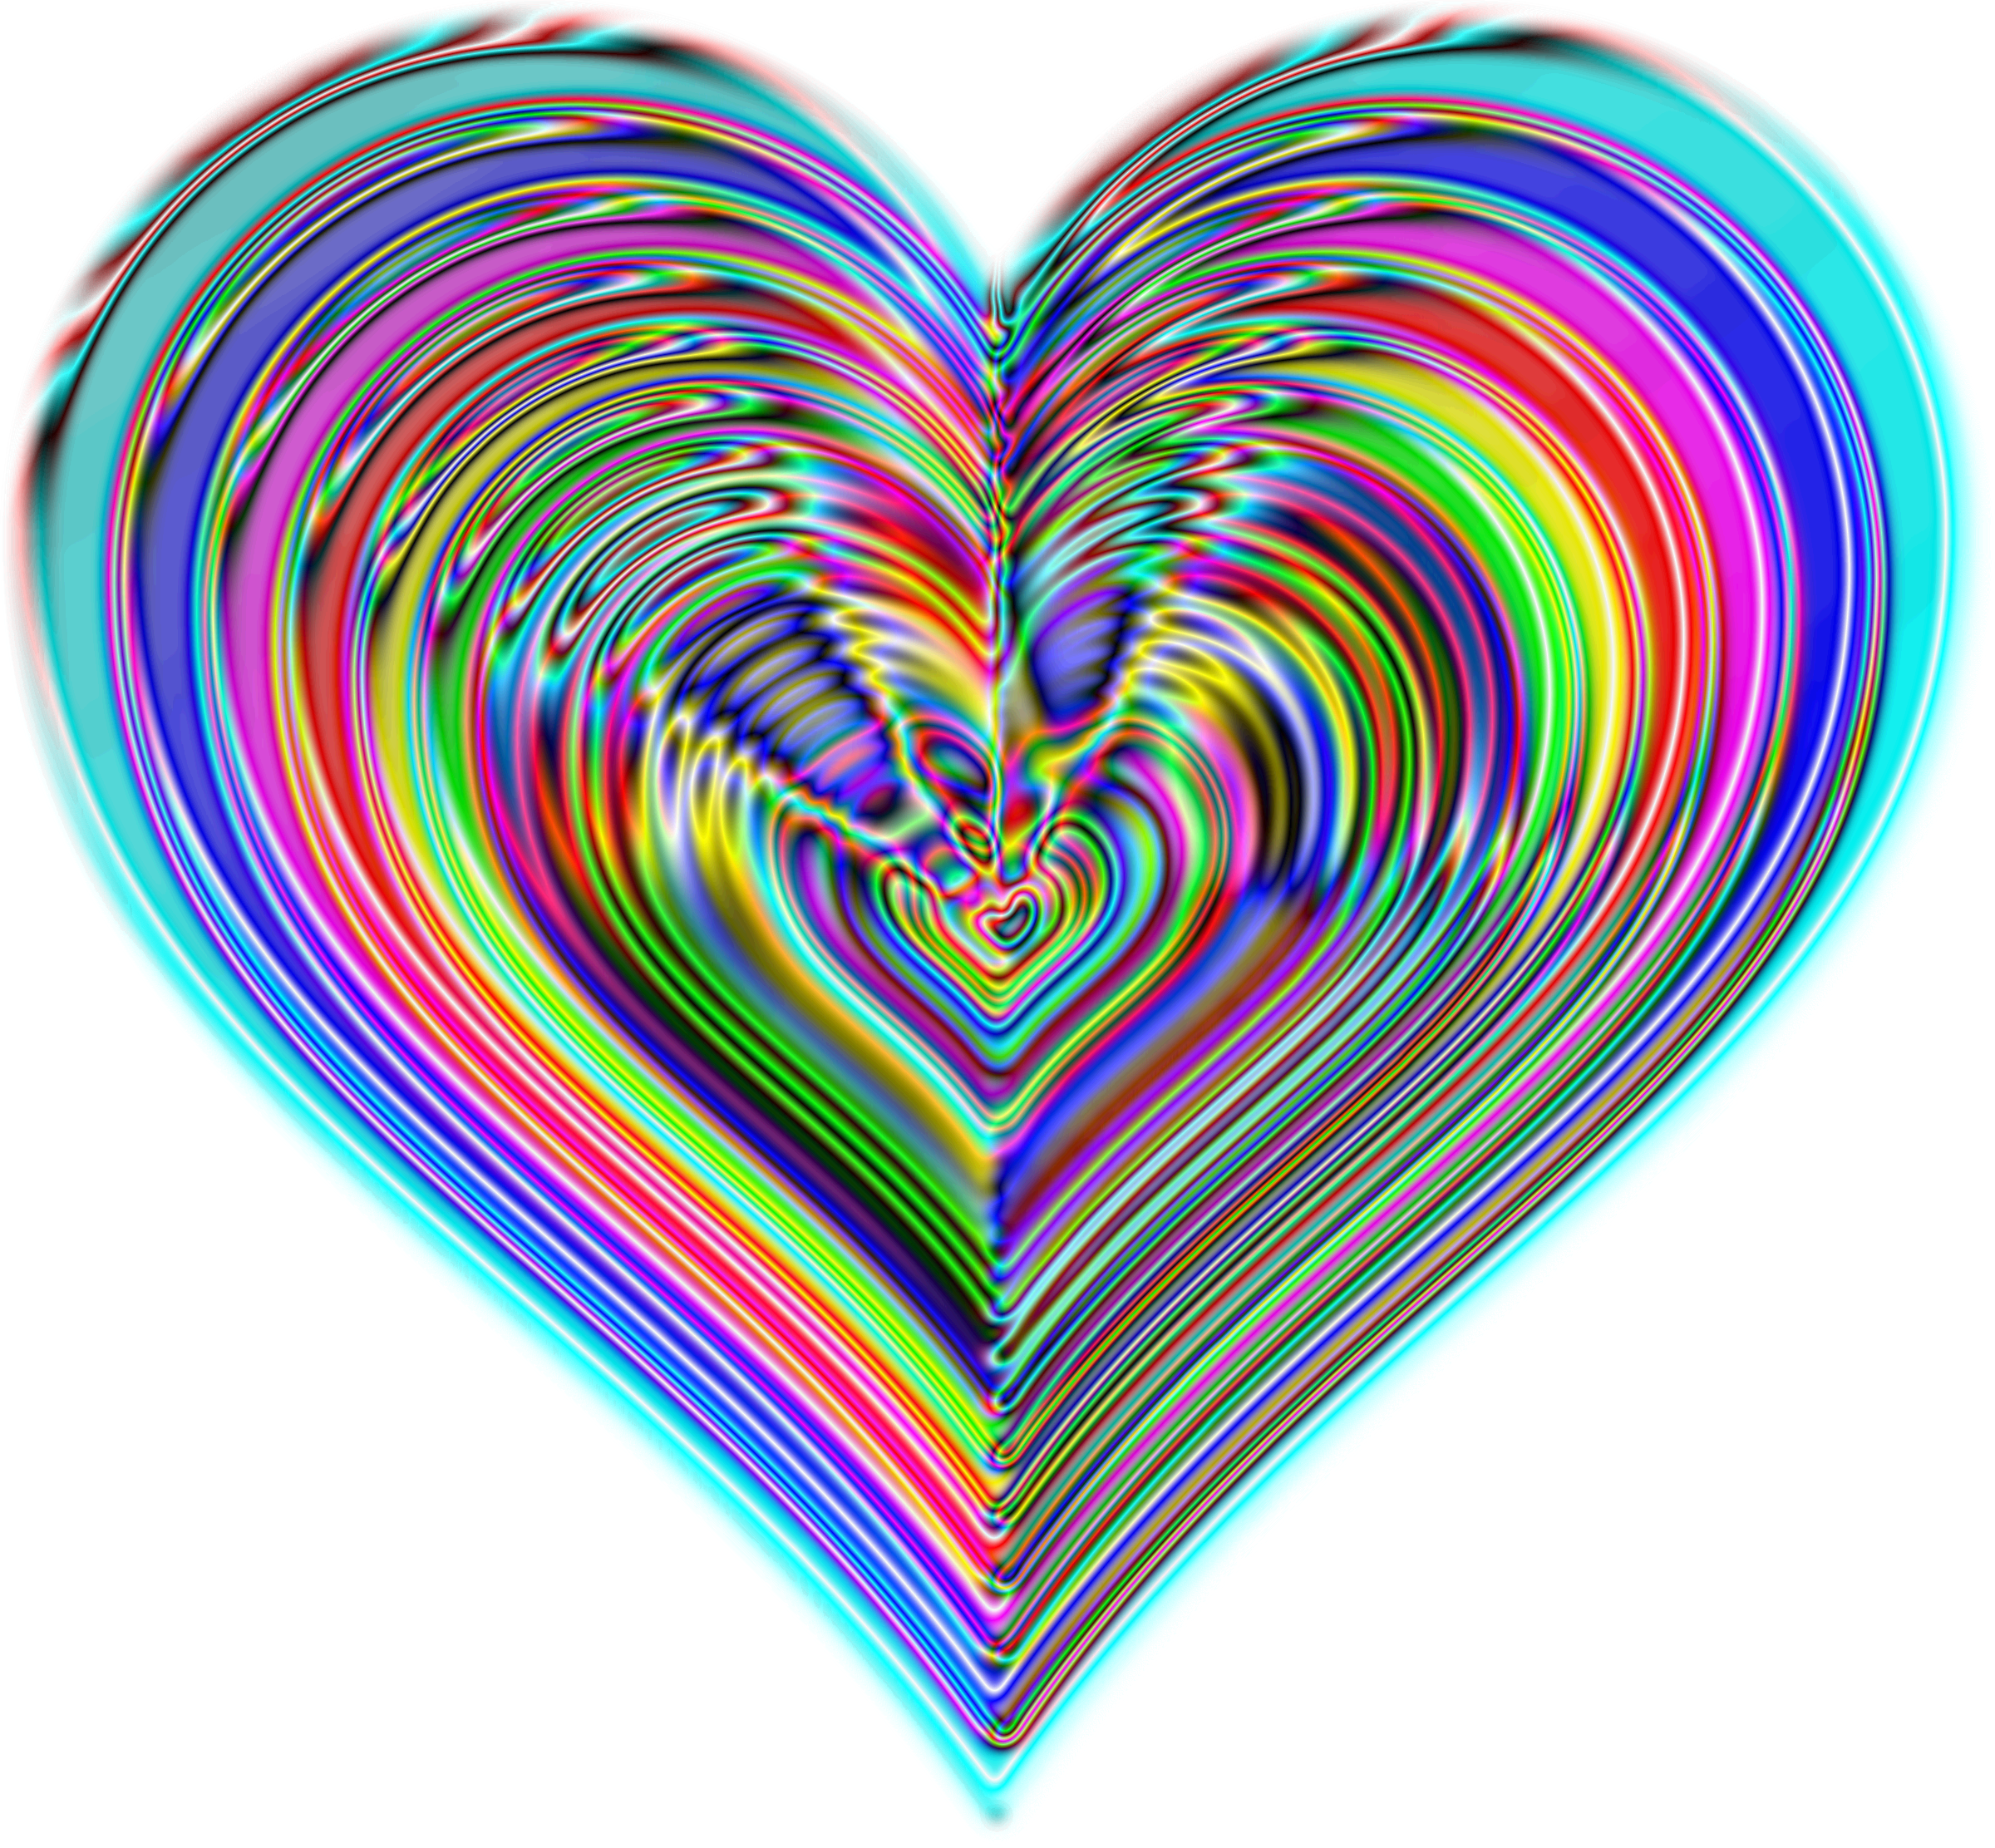 Rainbowrific Heart Enhanced 2 by GDJ